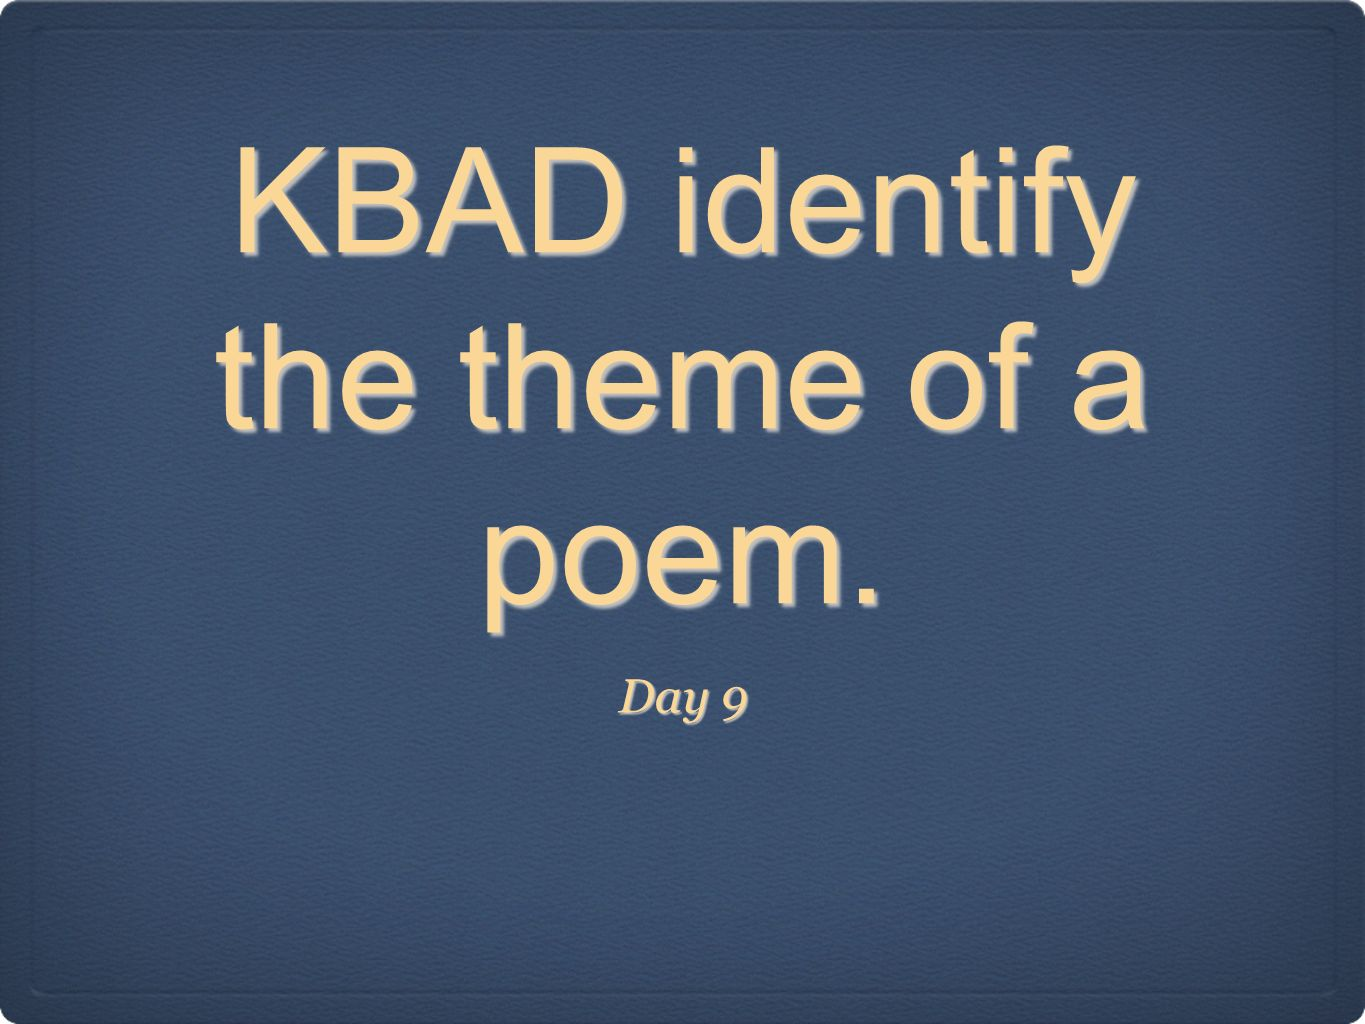 KBAD identify the theme of a poem.